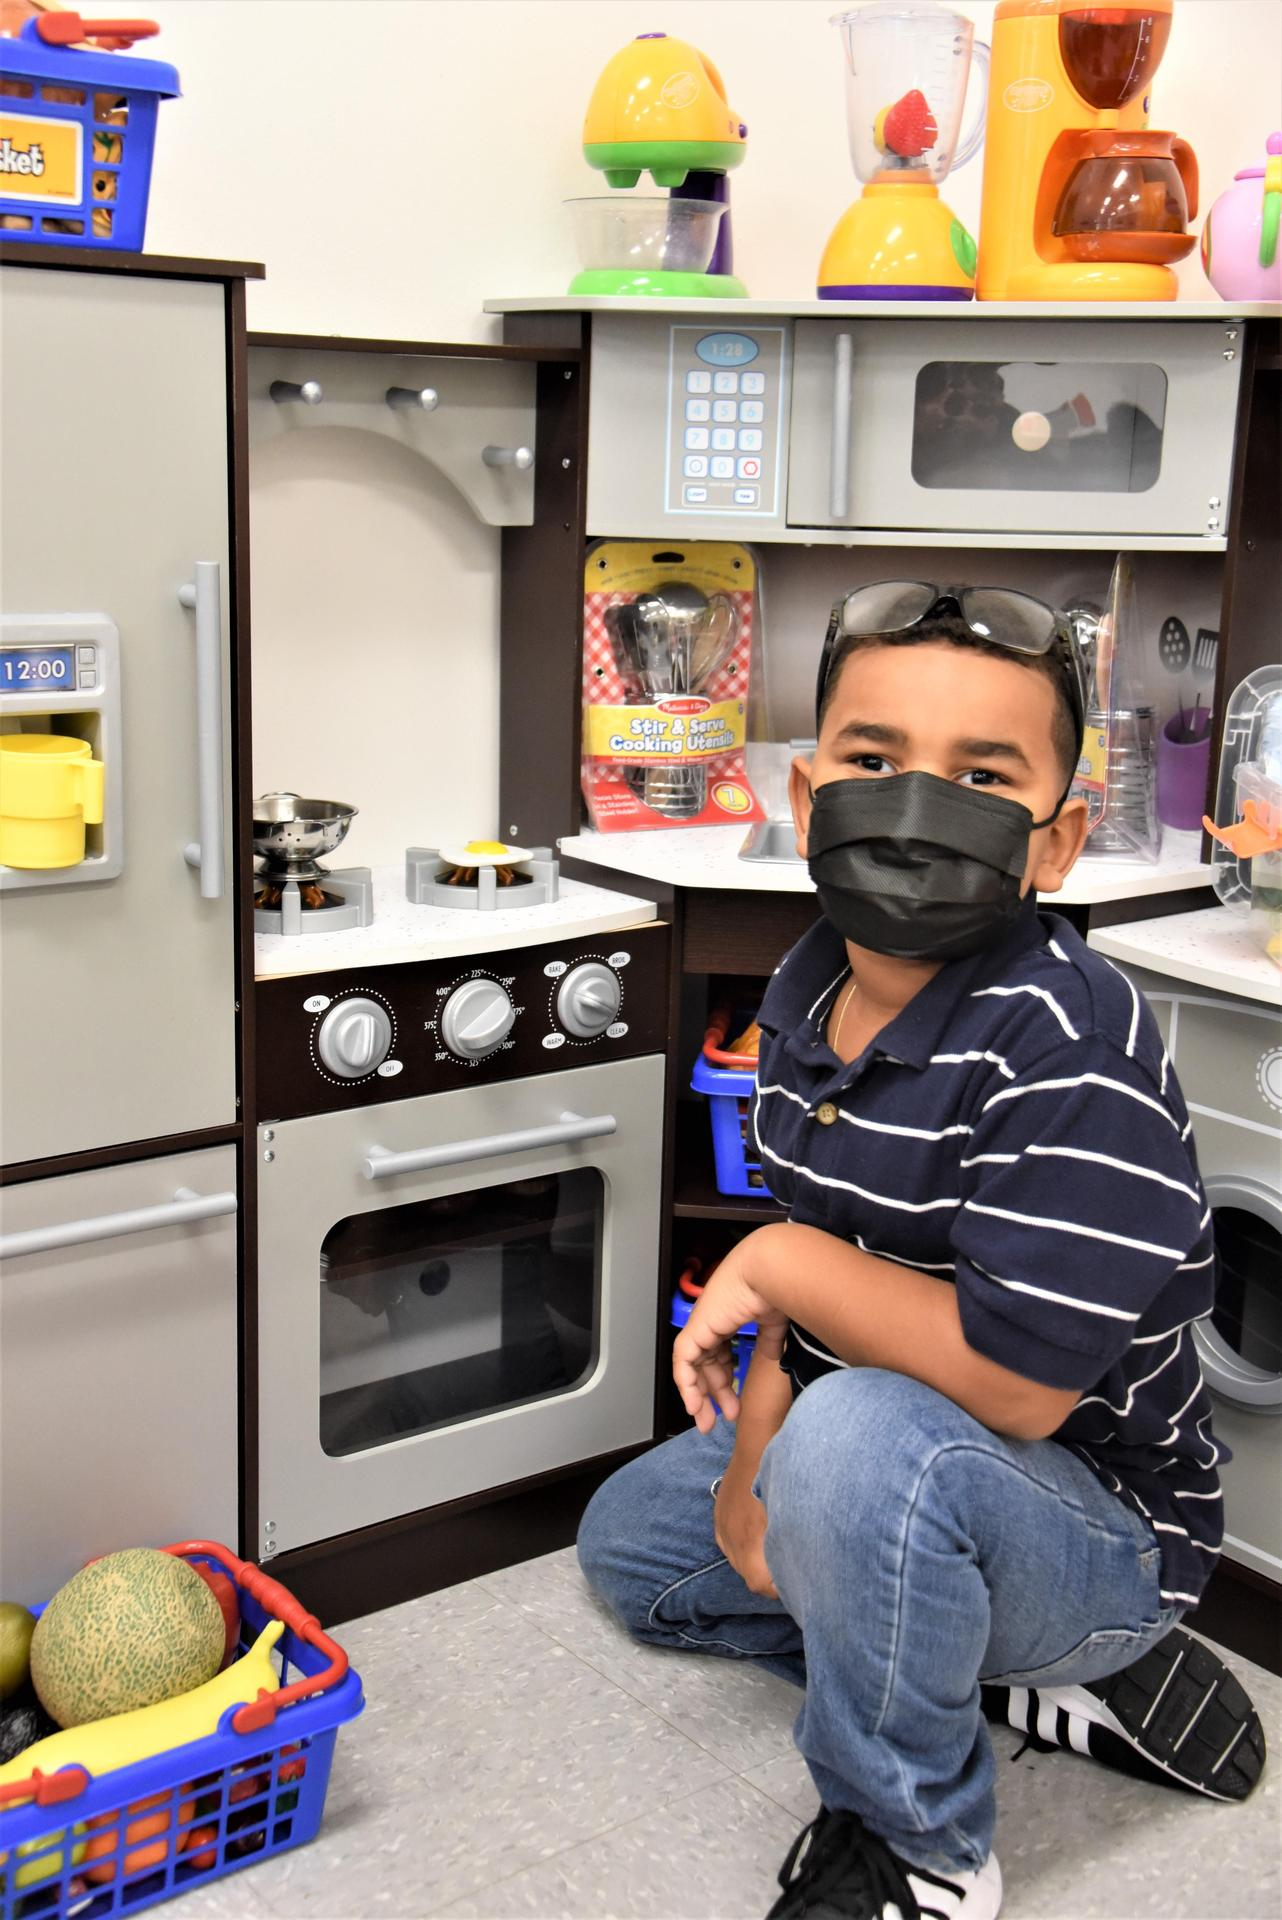 A boy kneels in front of a toy kitchen in a classroom